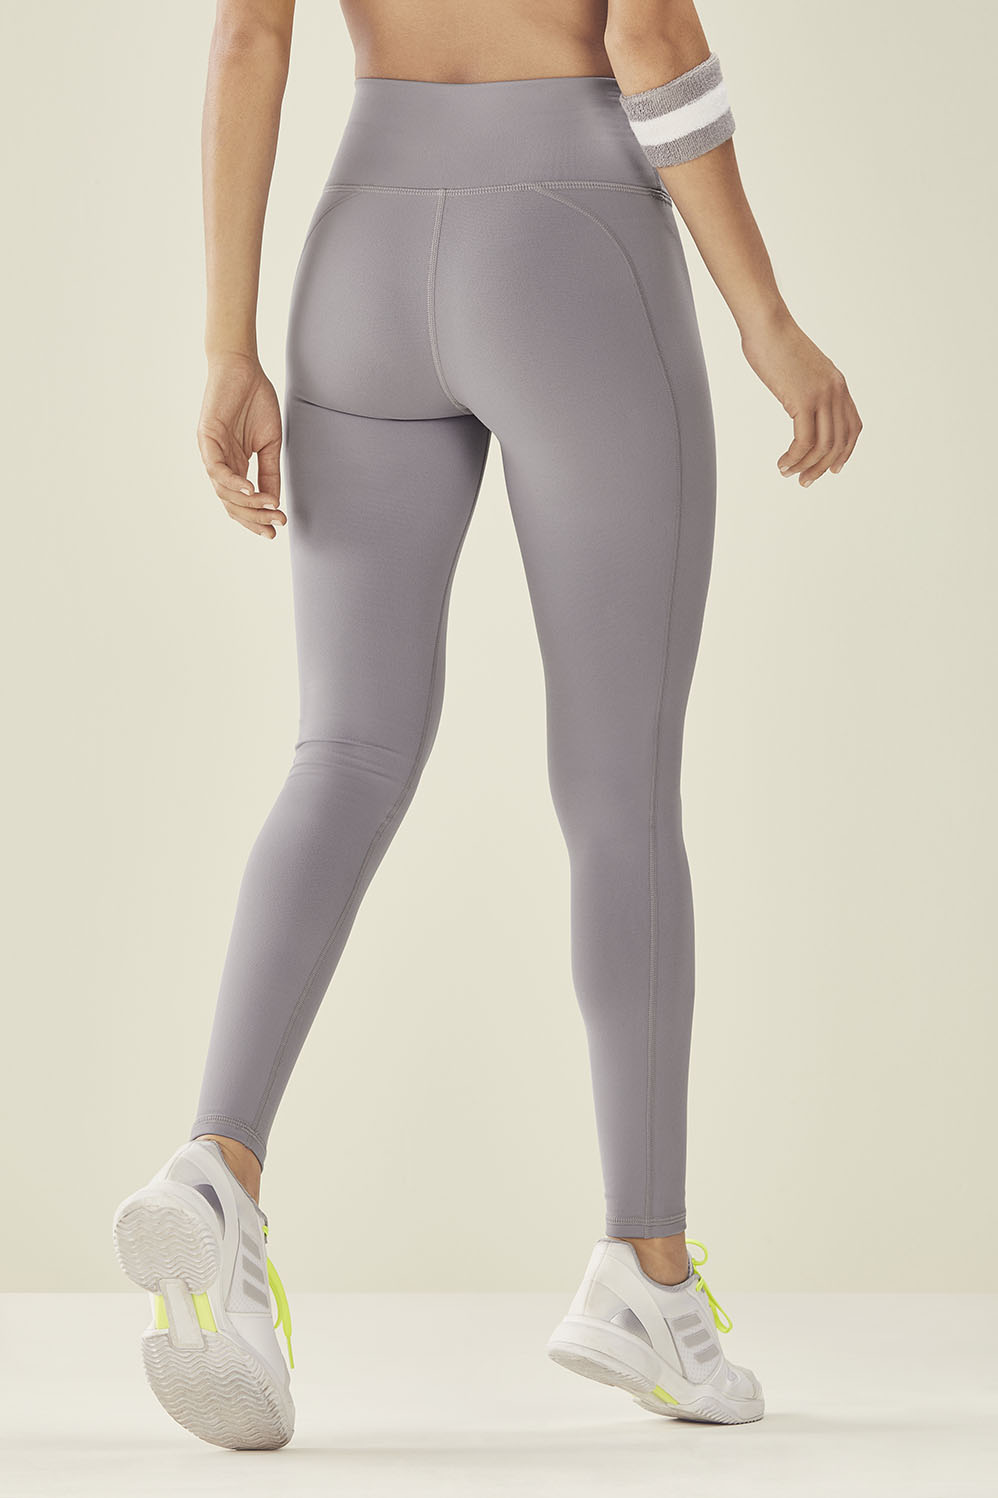 7c3af6a9768204 Fabletics Tight High-Waisted Solid Powerhold Legging Womens Blue Size 2X